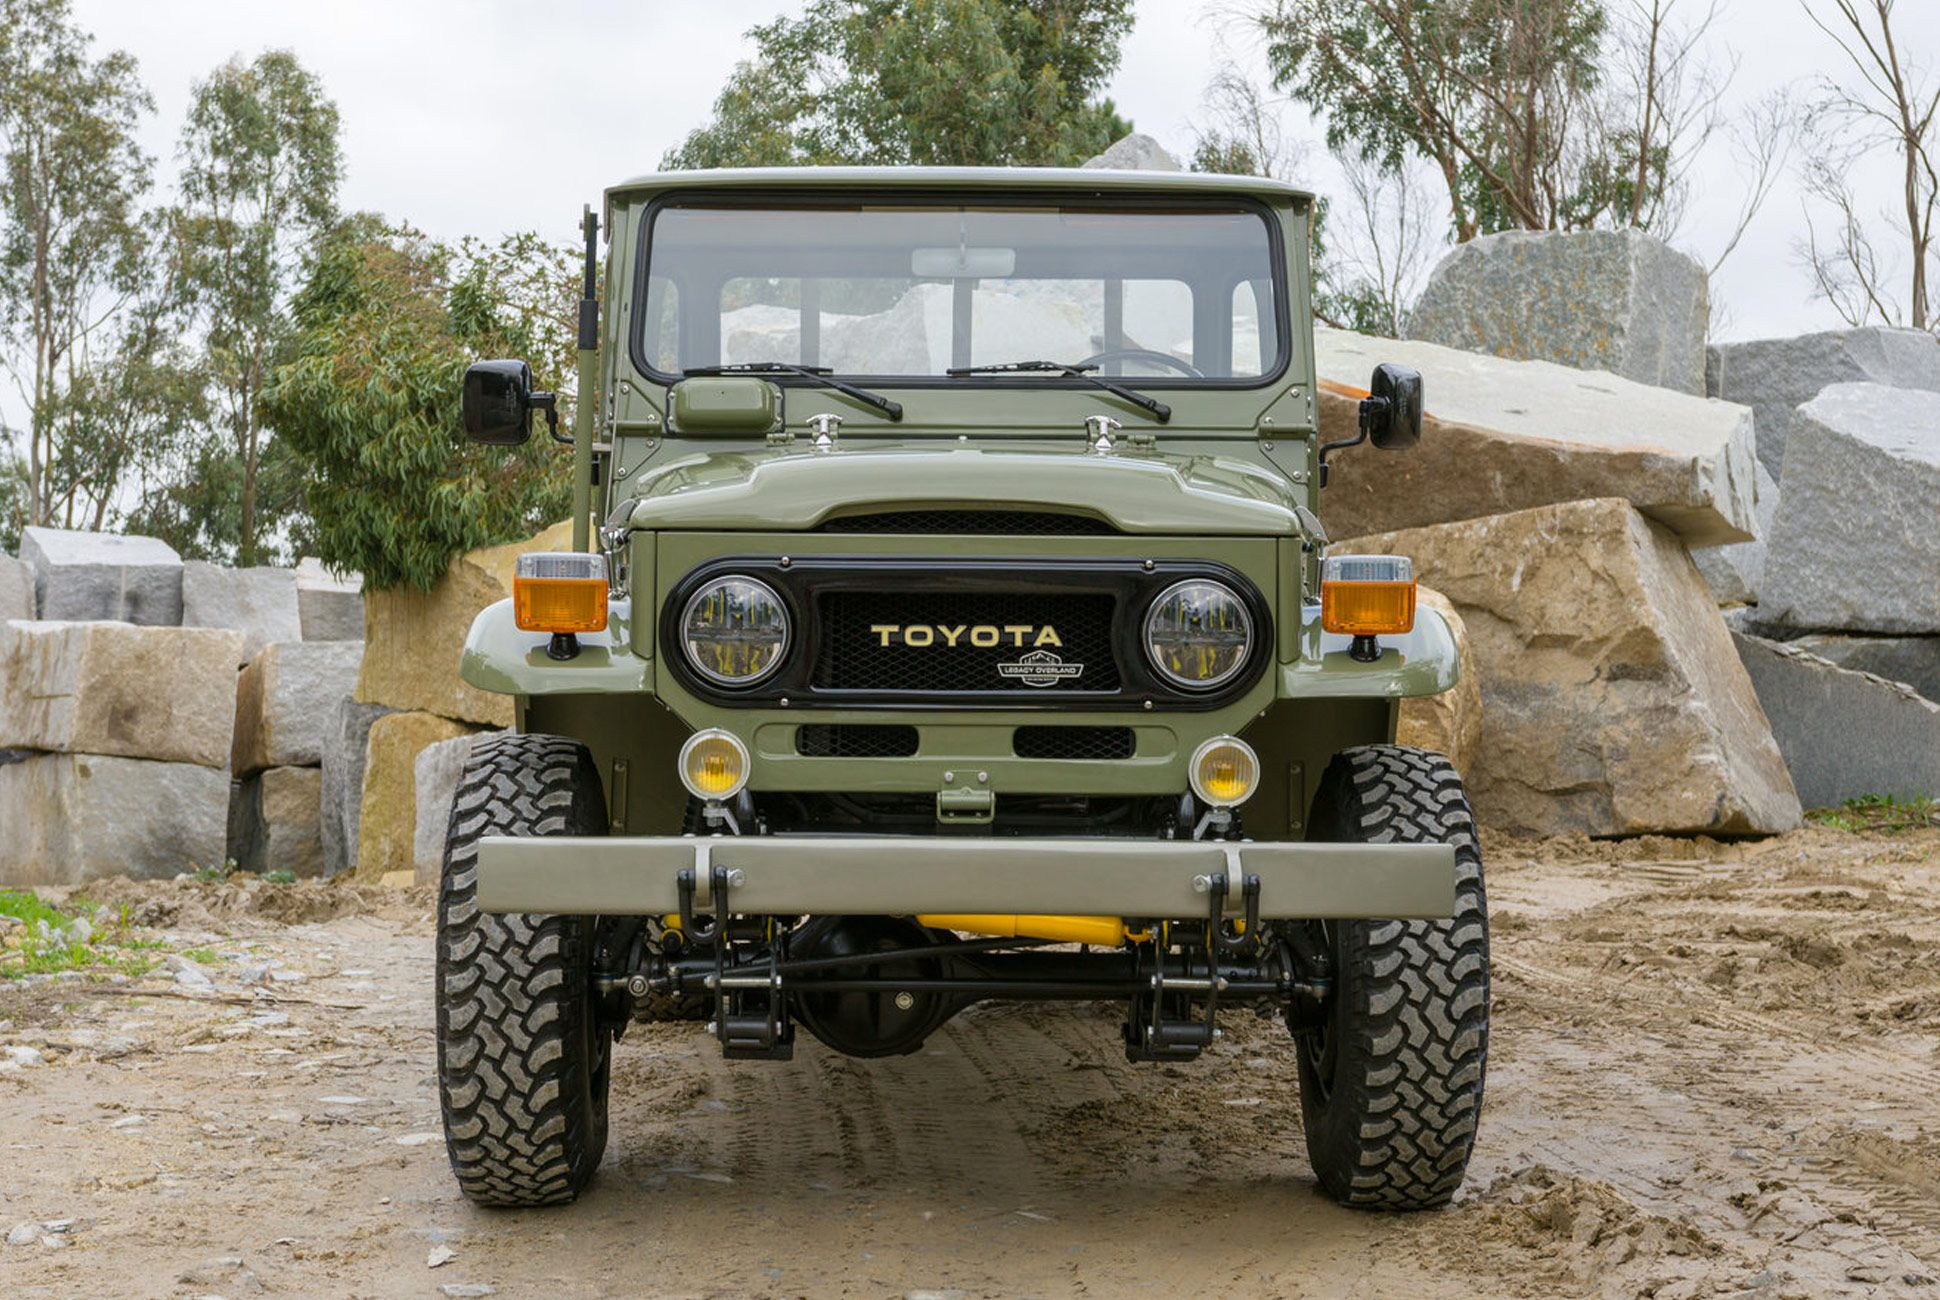 Overland-Pickup-Toyota-gear-patrol-6